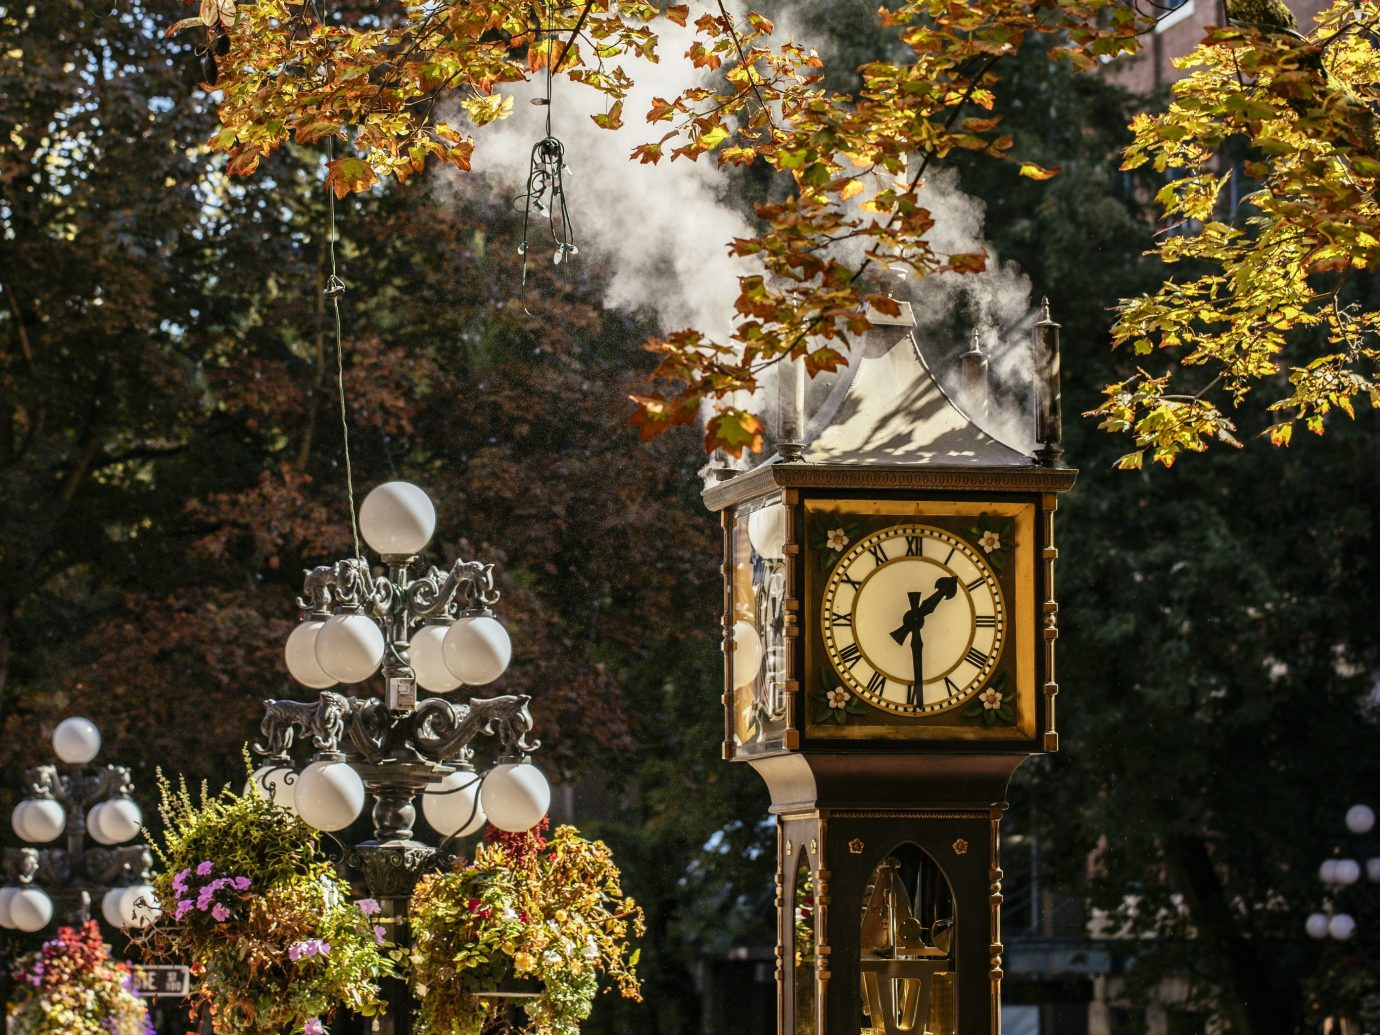 Trip Ideas clock tree outdoor season autumn leaf flower spring shrine surrounded